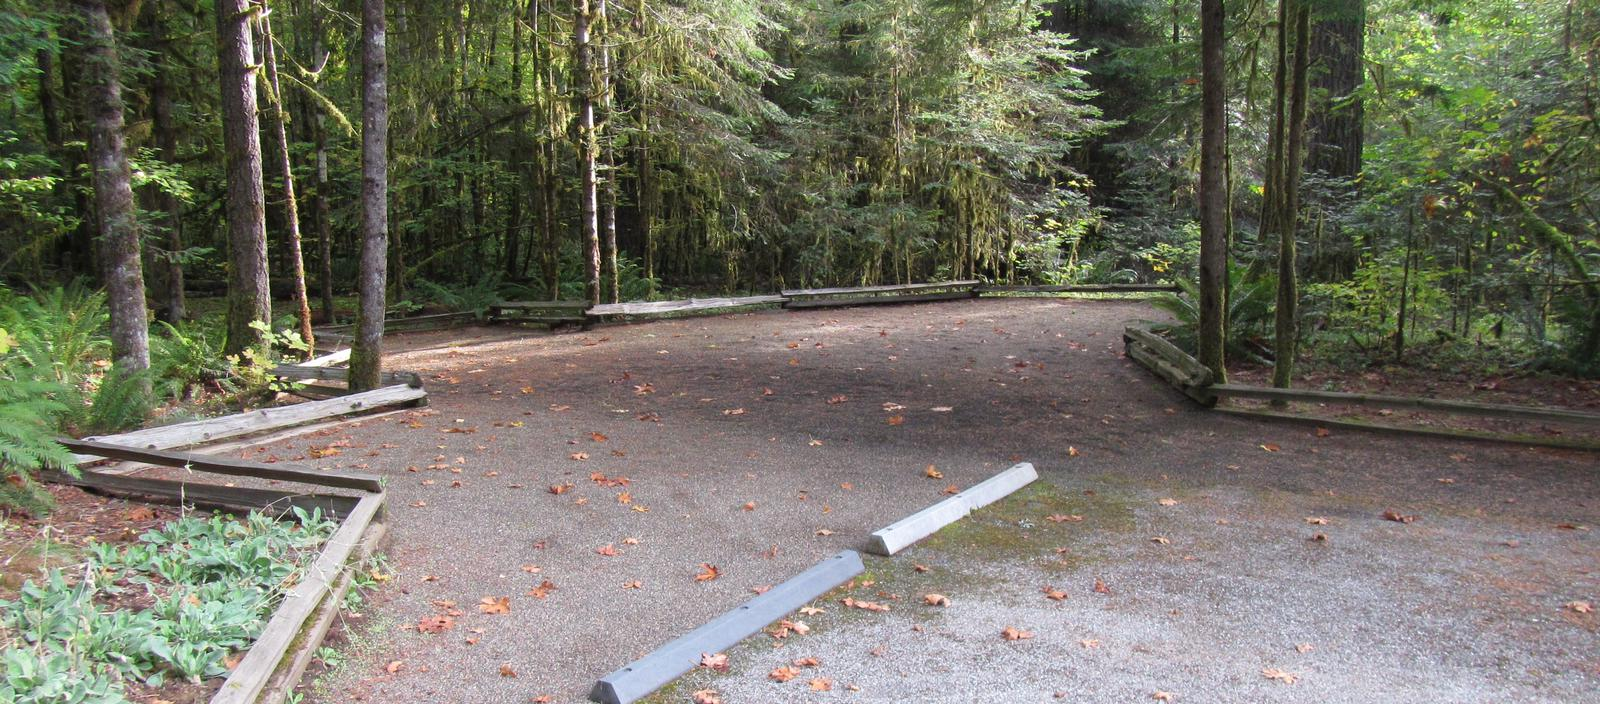 Large tent camping area, does not include picnic table